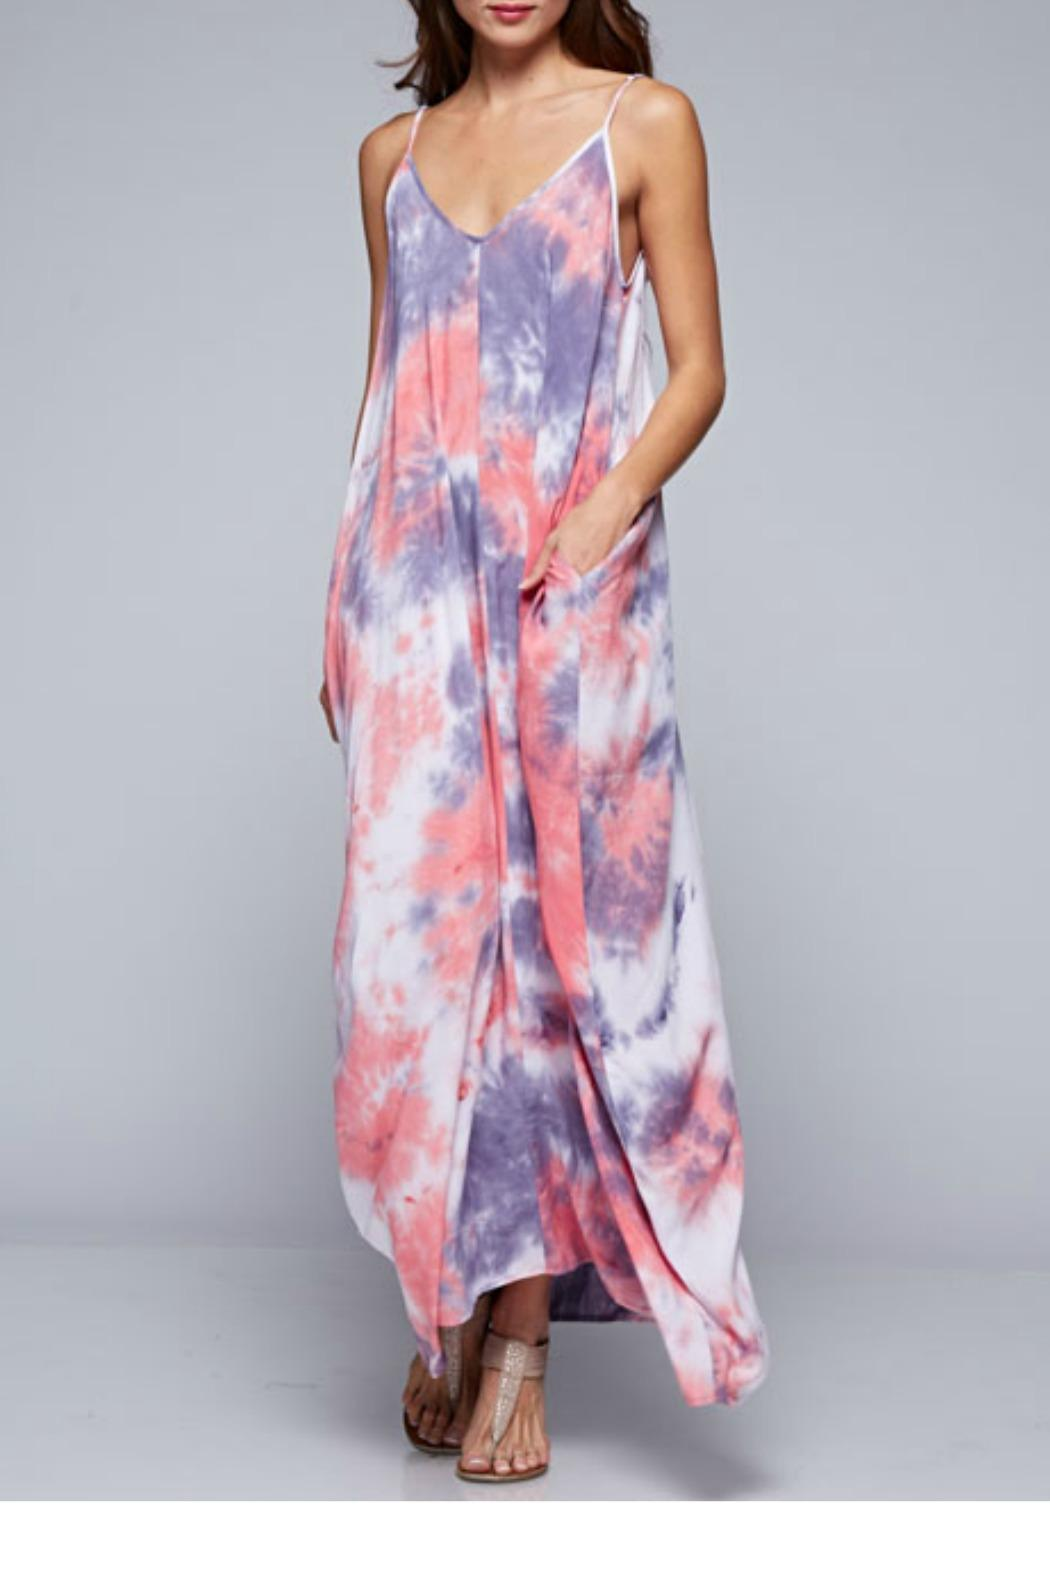 Lovestitch Tie Dye Maxi Dress From Chicago By Blush Boutique